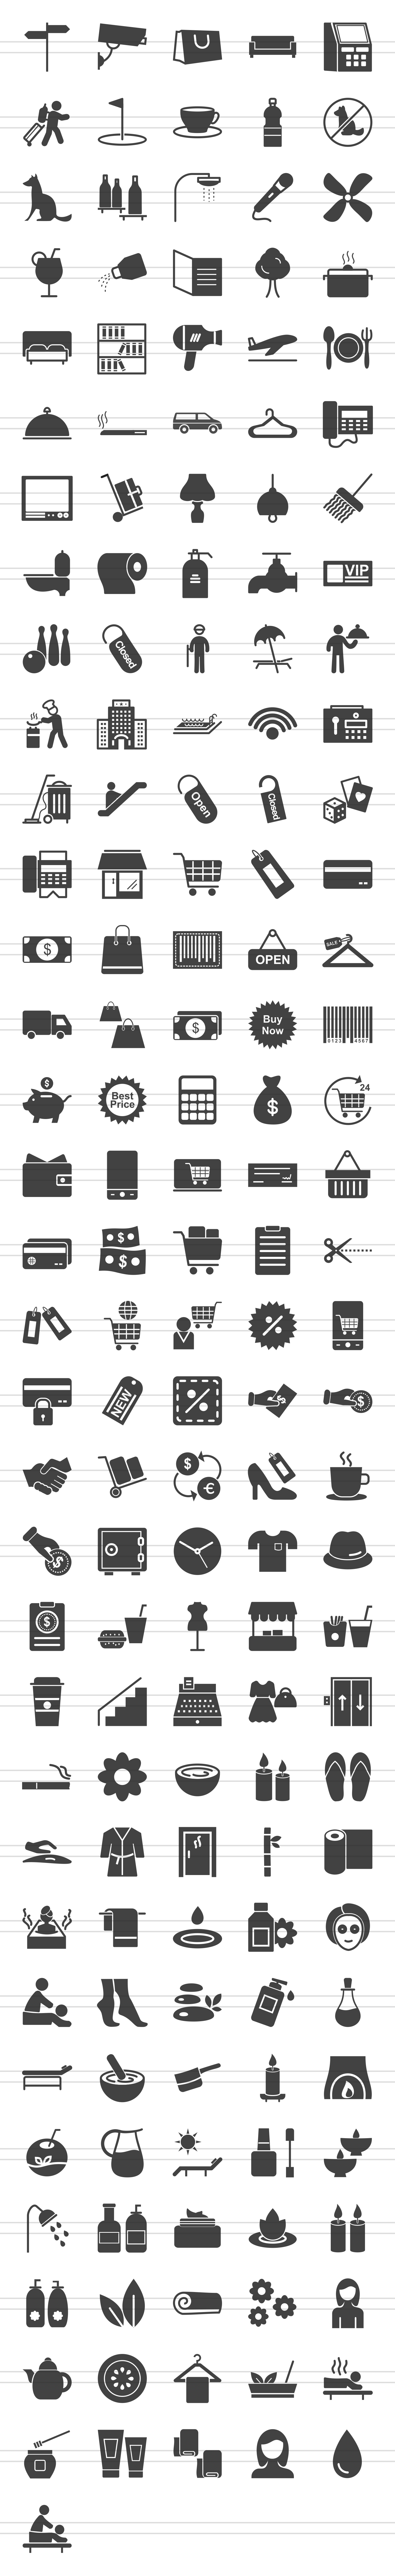 166 Hotel & Relaxation Glyph Icons example image 2